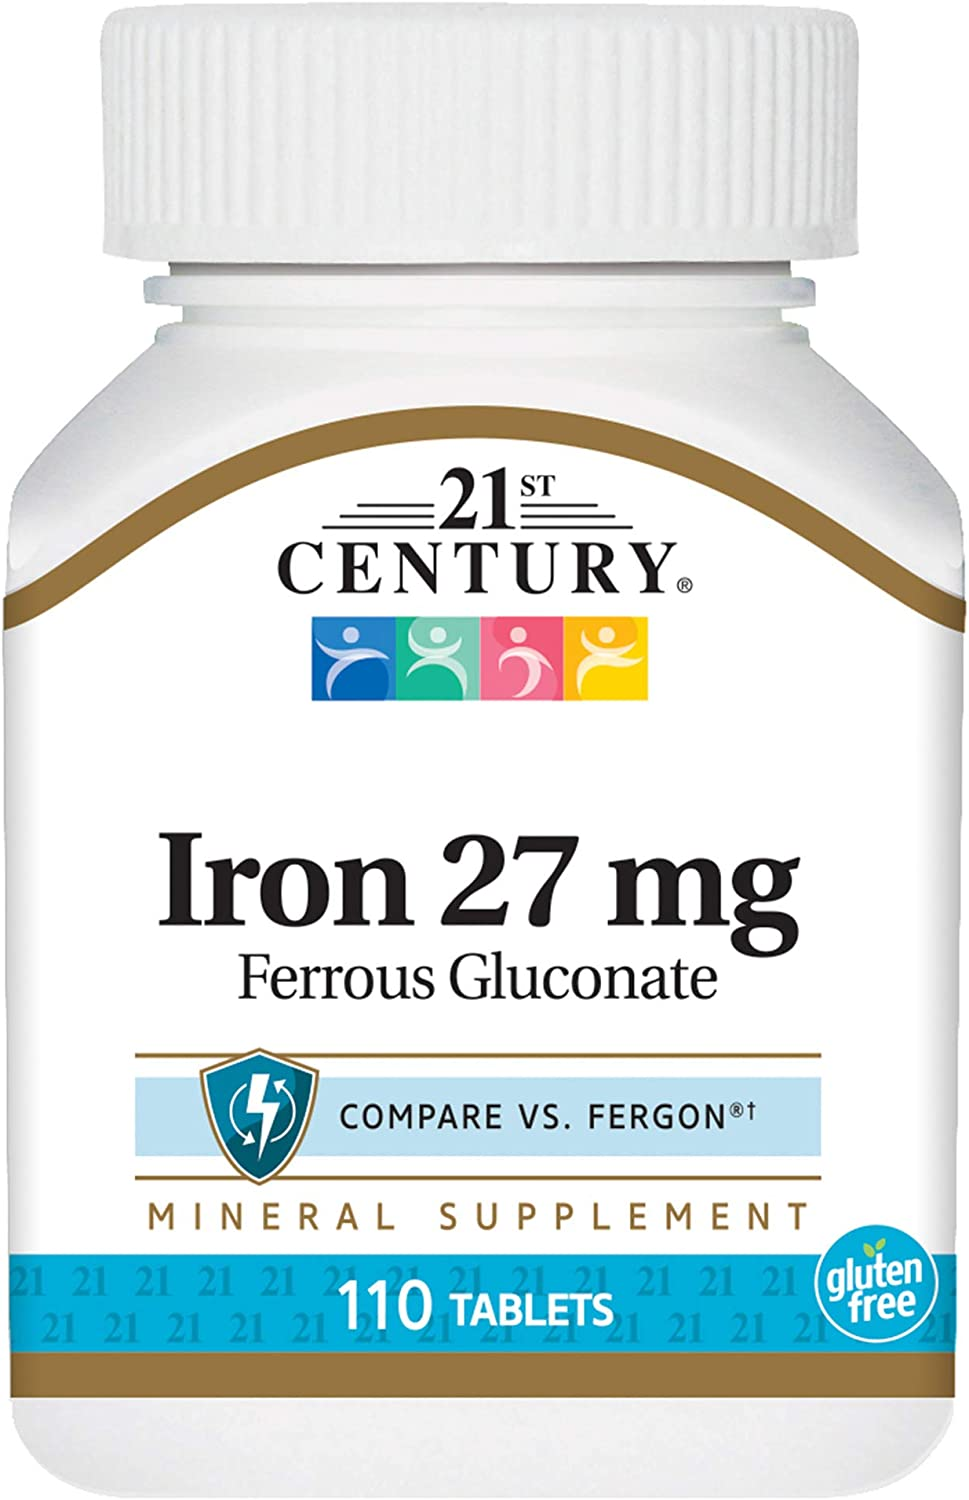 21st Century Iron 27 Mg Ferrous Gluconate Tablets, 110Count